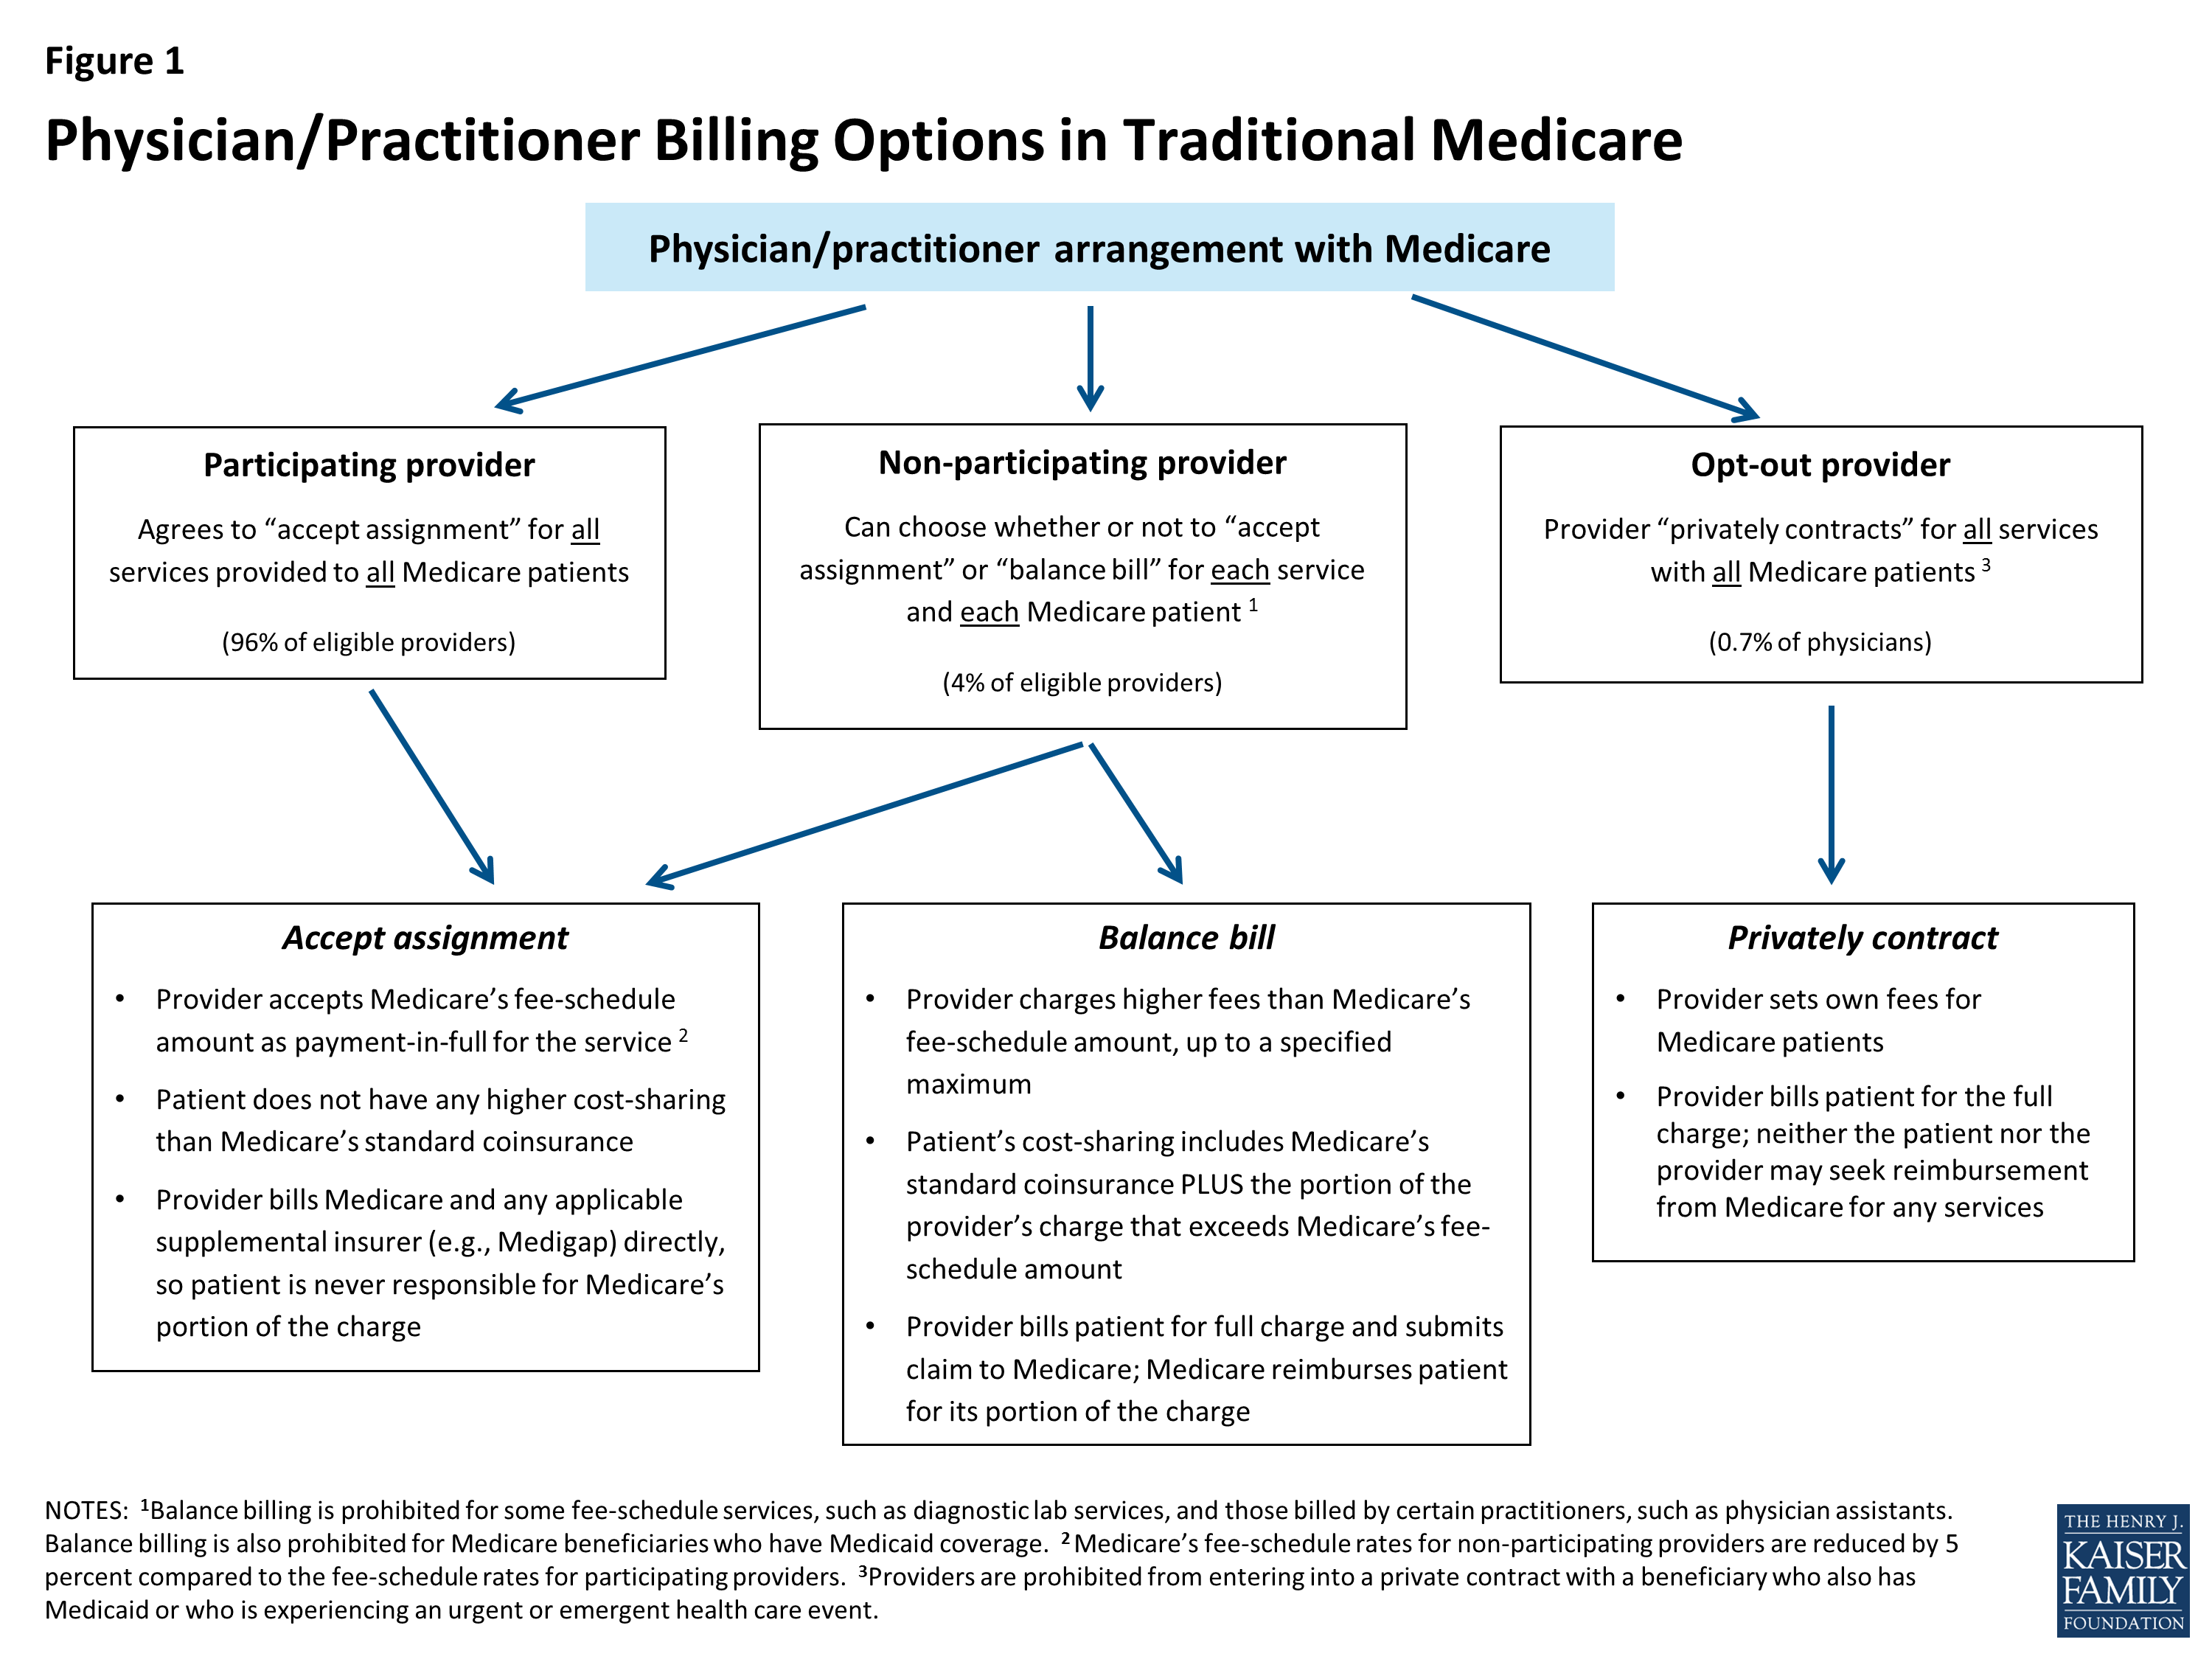 Paying a Visit to the Doctor: Current Financial Protections